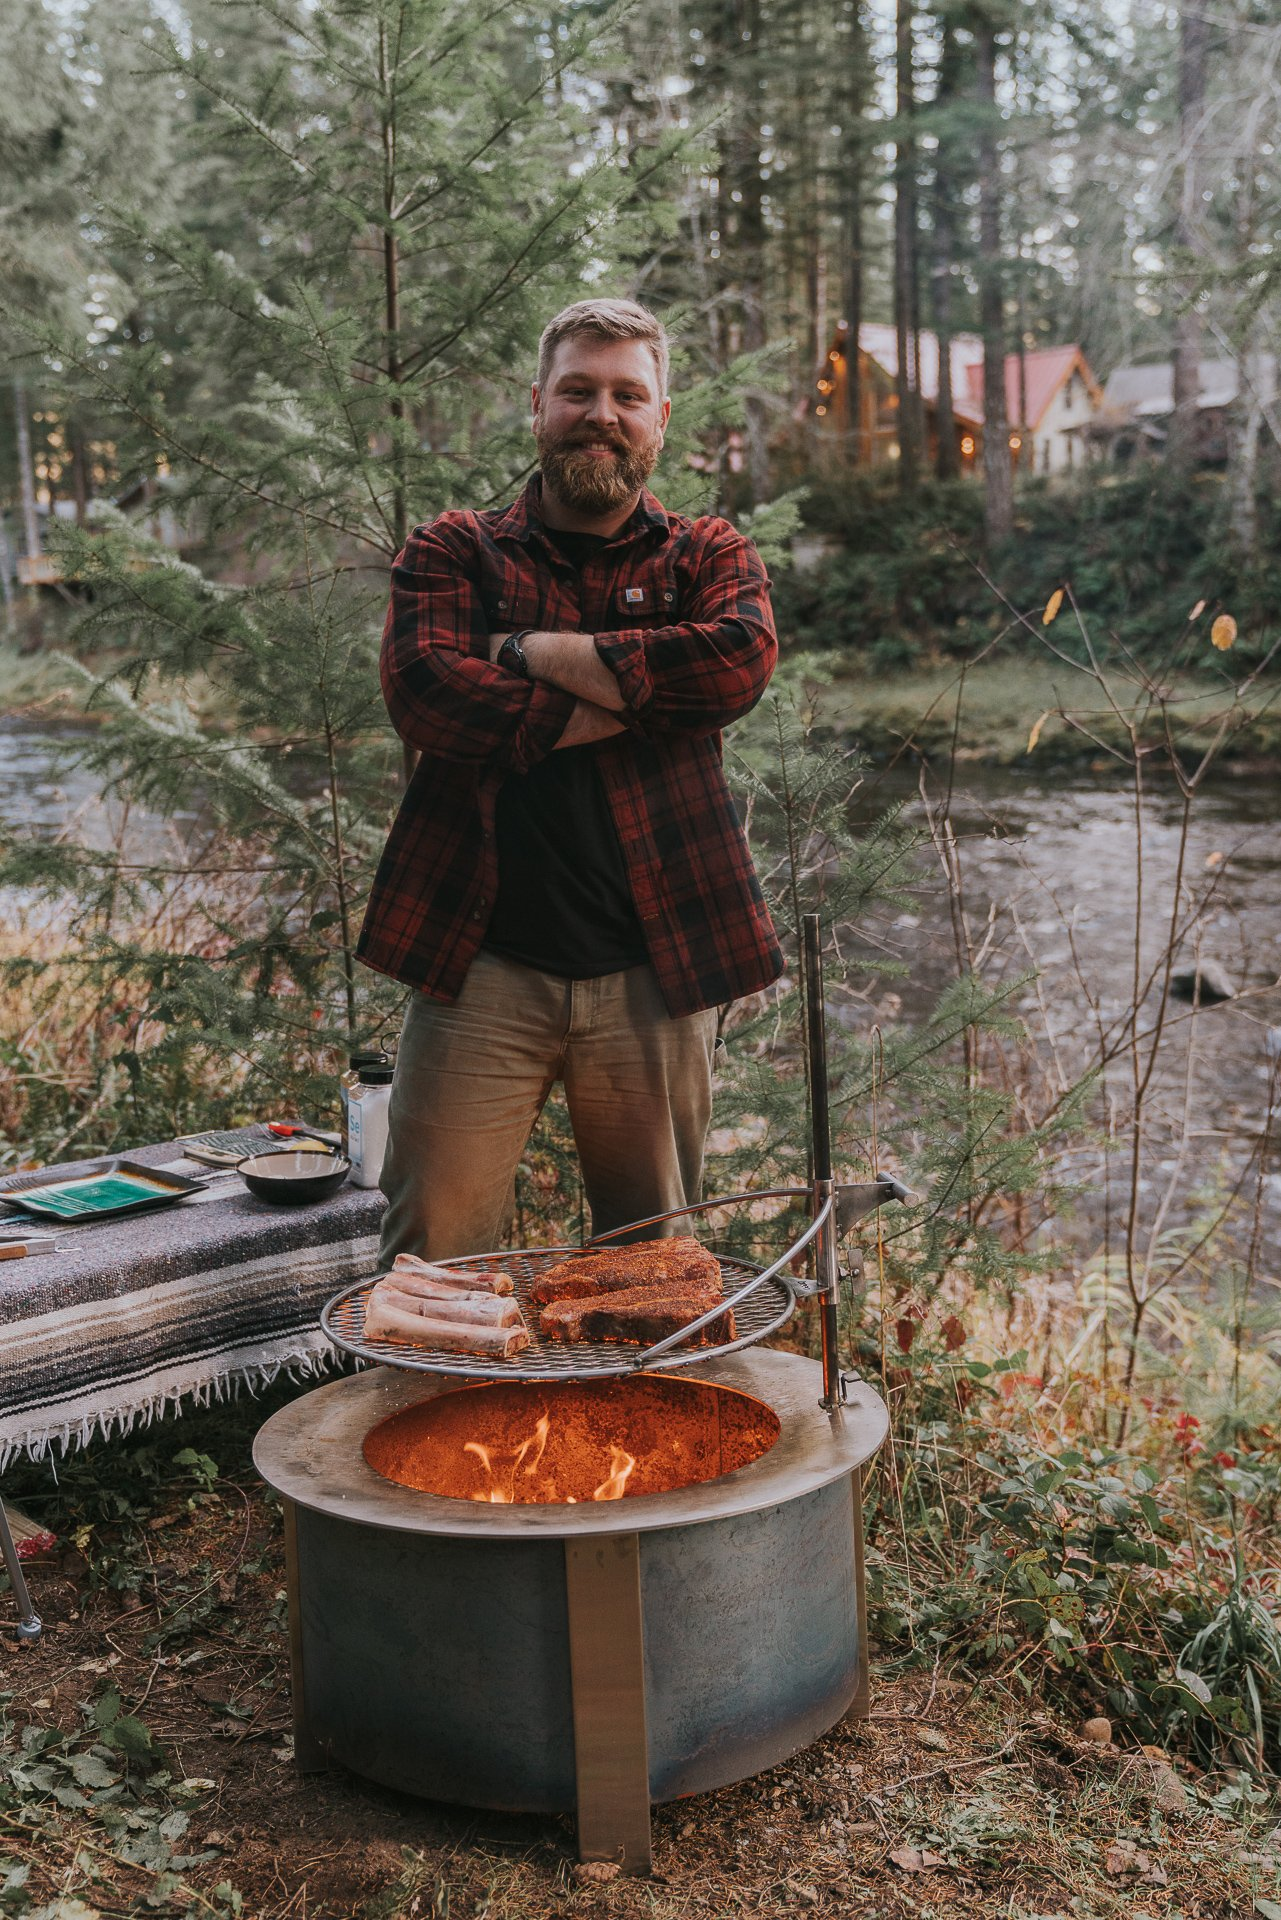 lets cook on a good fire pit